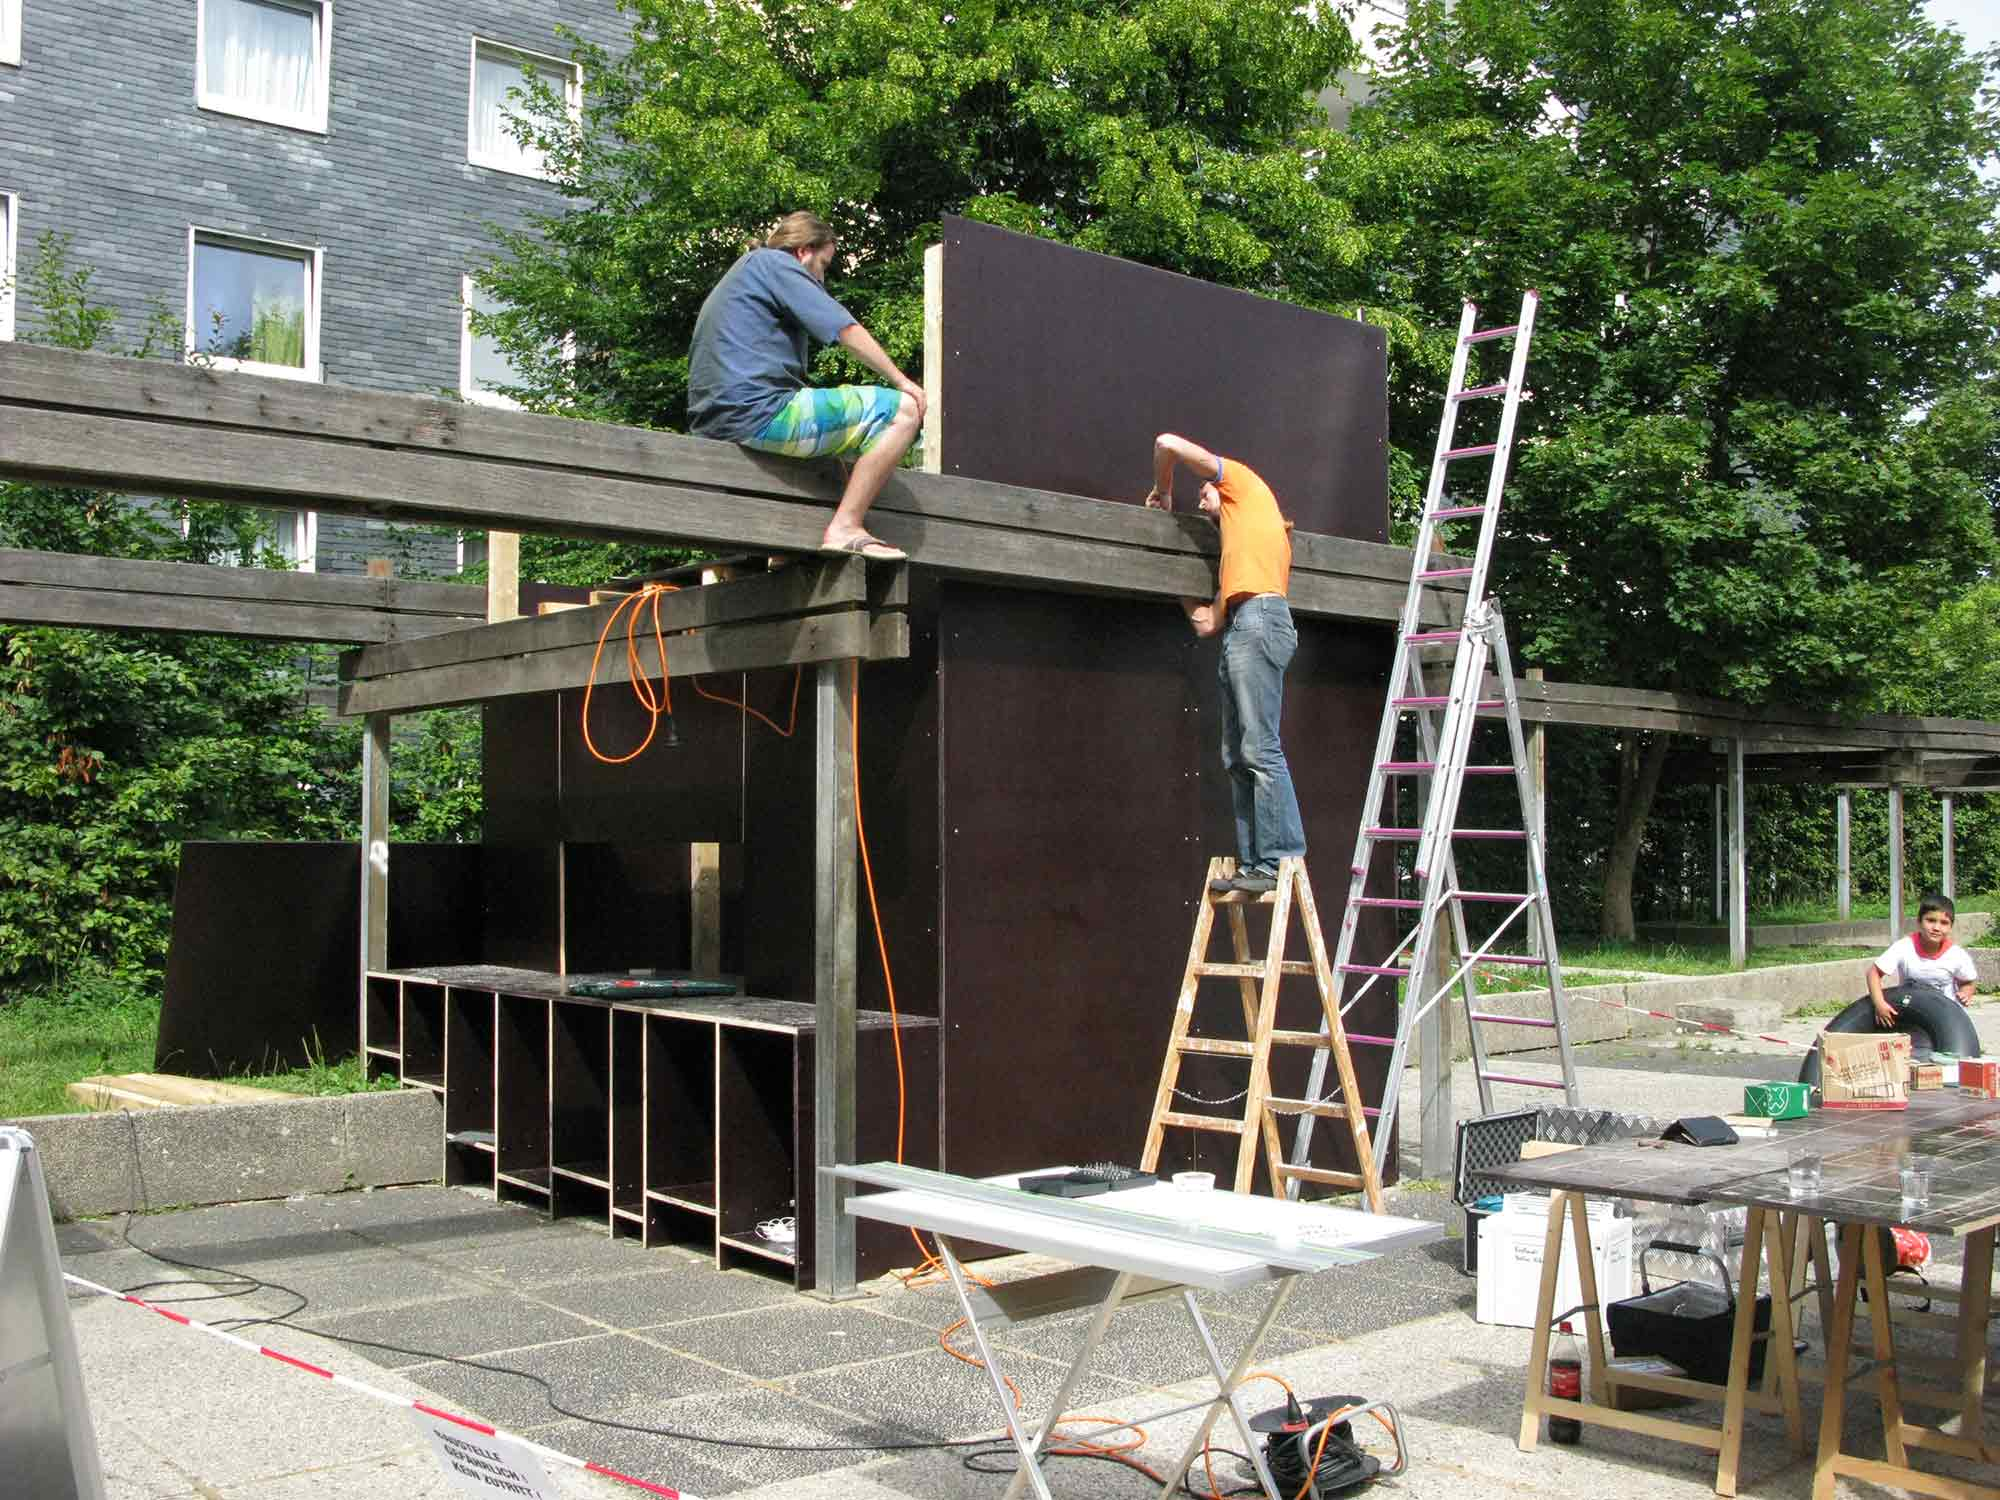 Apolonija Šušteršič, Hustadt Project, Building the temporary pavilion.